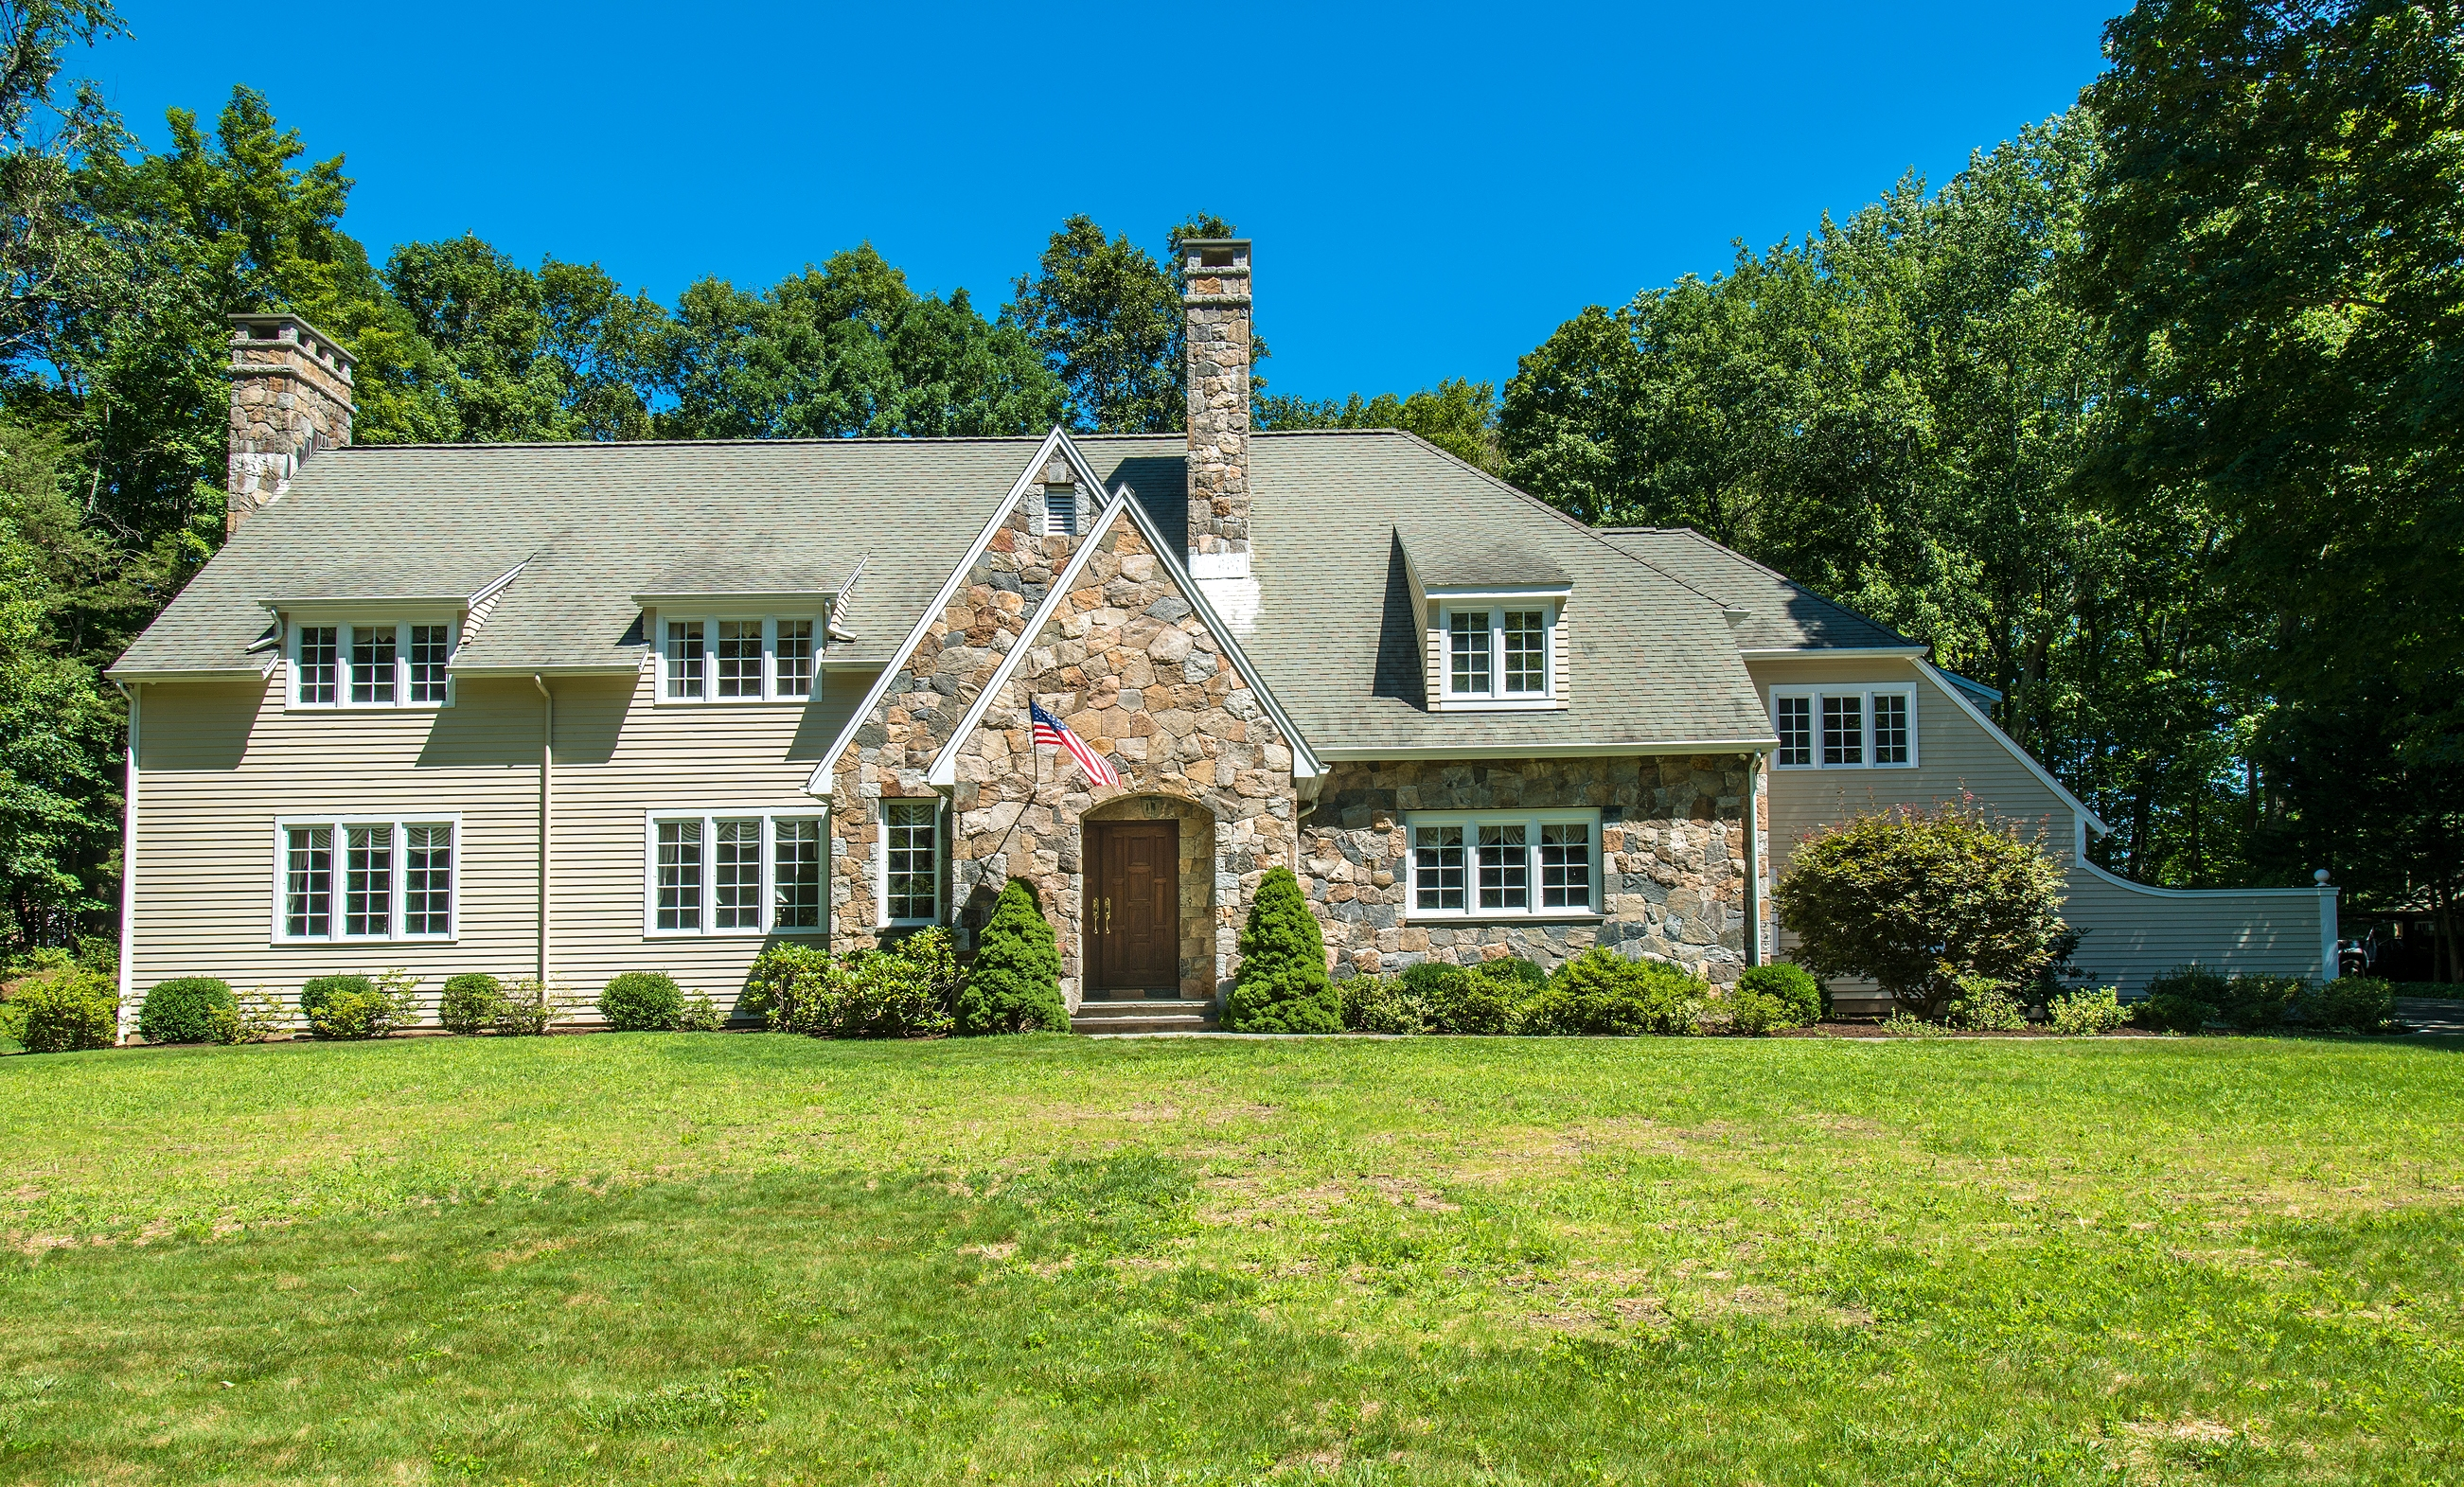 Casa Unifamiliar por un Venta en 93 Sleepy Hollow Road New Canaan, Connecticut, 06840 Estados Unidos